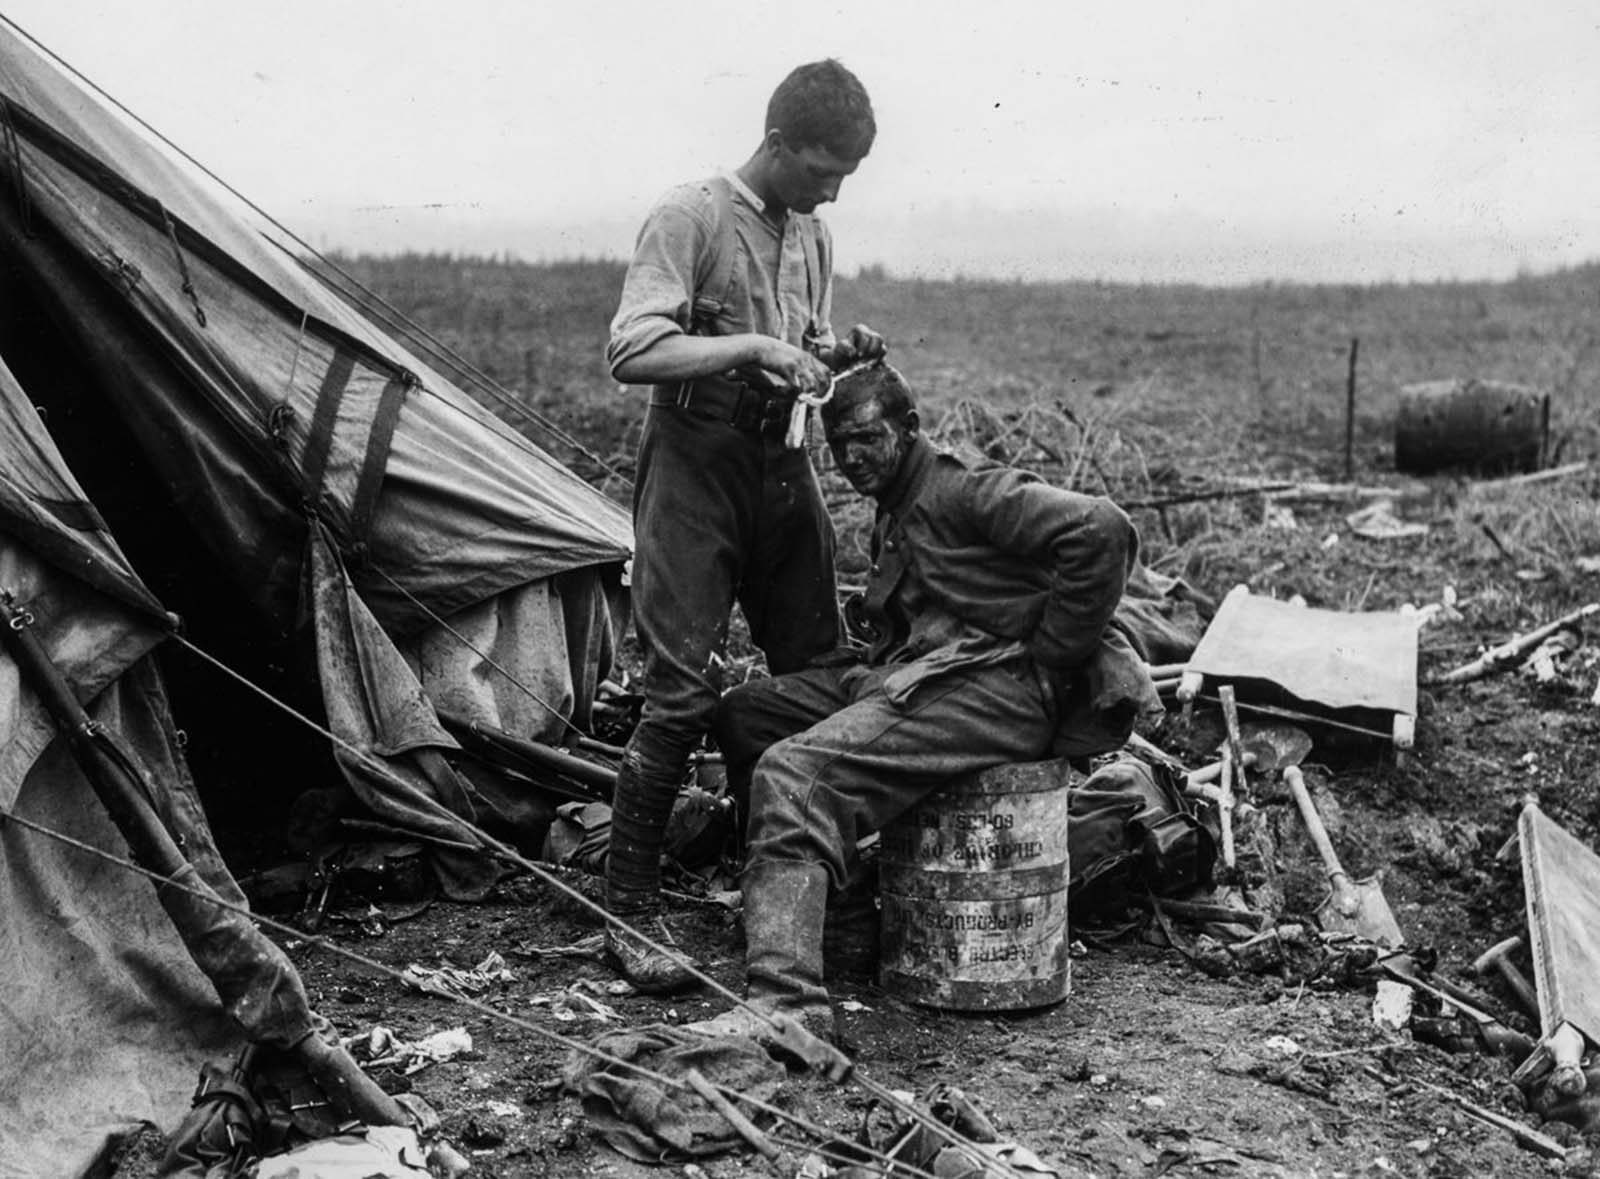 A British soldier dresses the wounds of a German prisoner near Bernafay Wood. July 19, 1916.